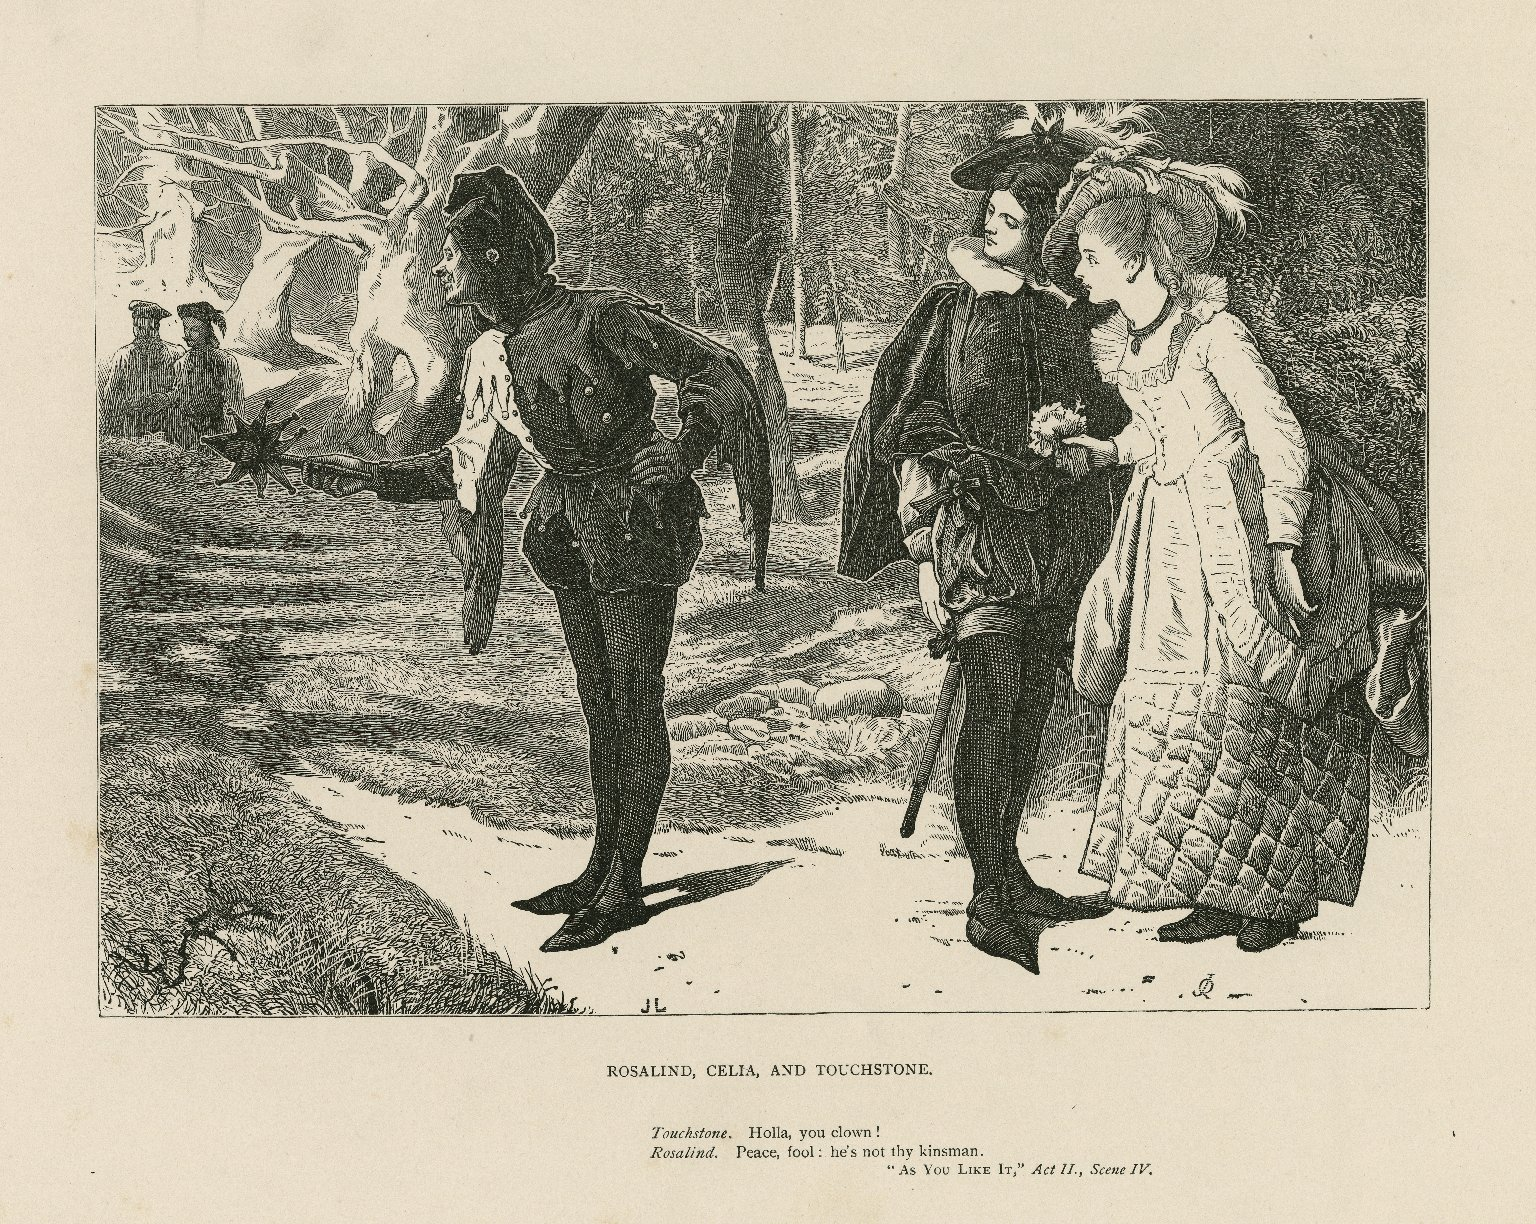 Rosalind, Celia, and Touchstone ... Holla, you clown! ... Peace, fool, he's not thy kinsman, As you like it, act II, scene IV [graphic] / J.L. ; J.Q.